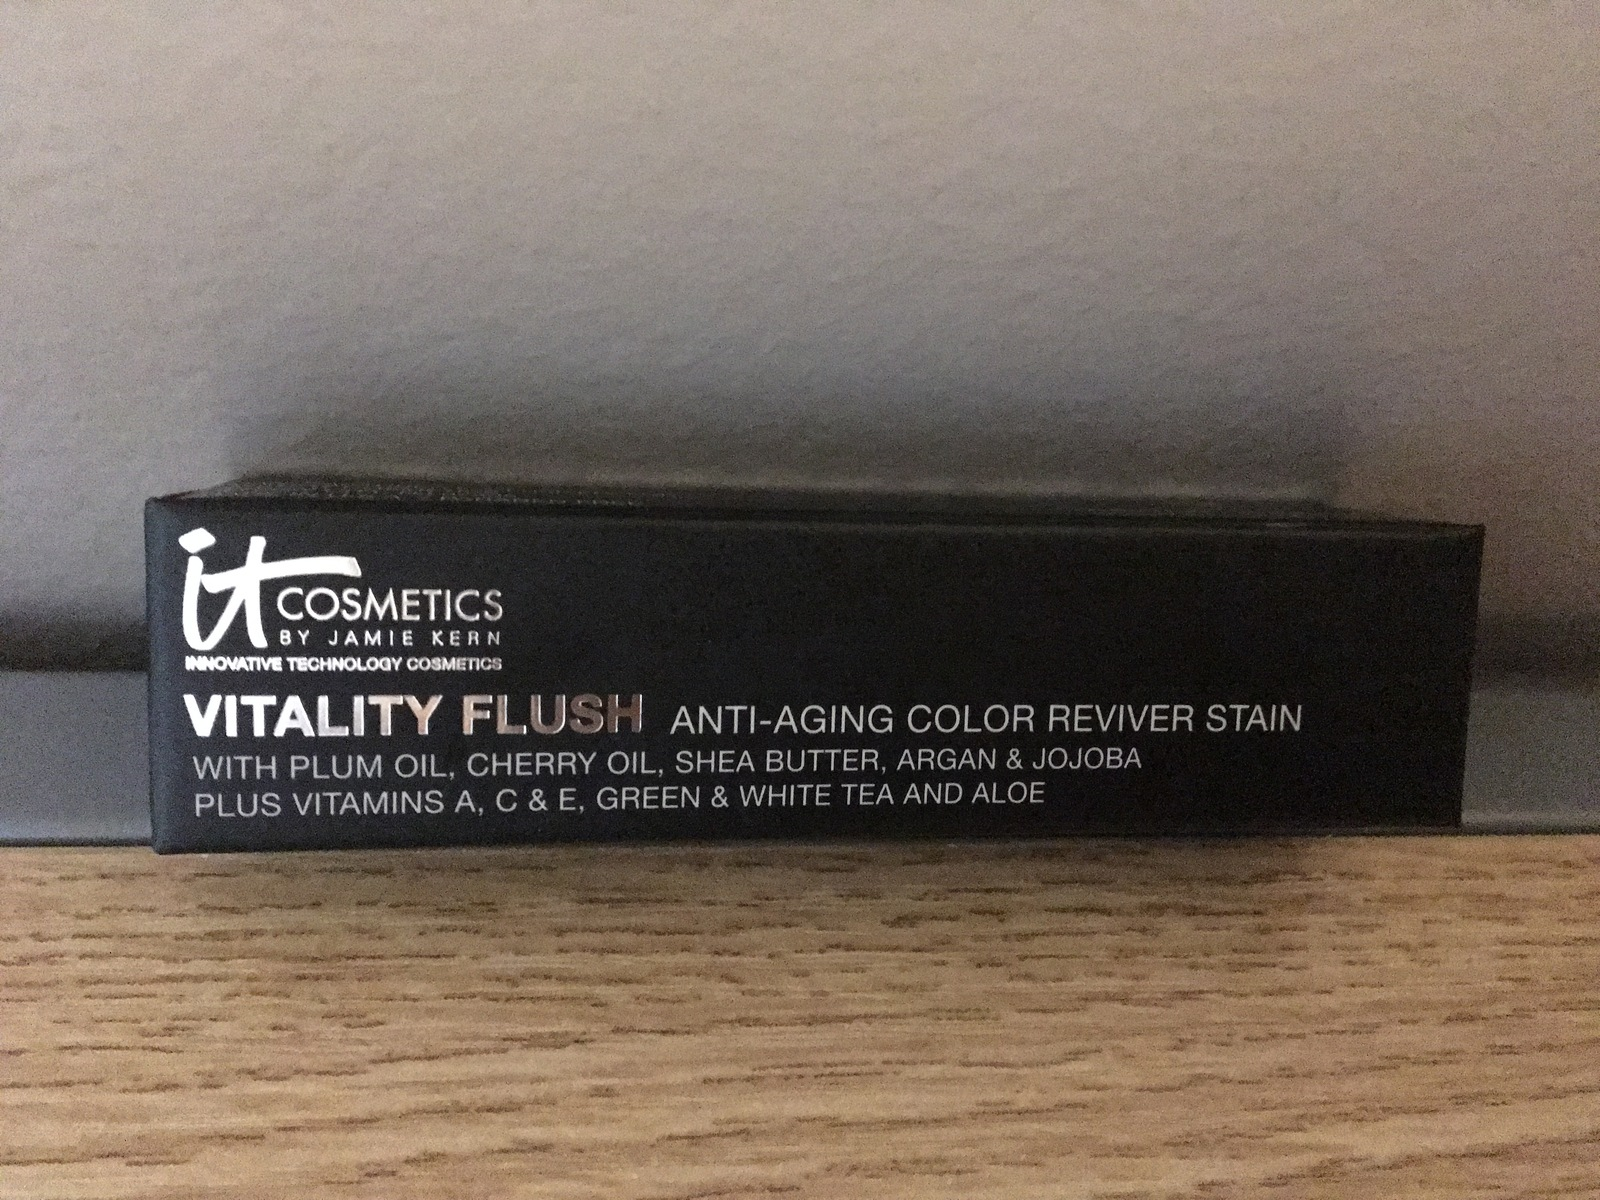 Primary image for IT Cosmetics Vitality Flush Color Reviver Stain Retail $29.00 ROSE FLUSH